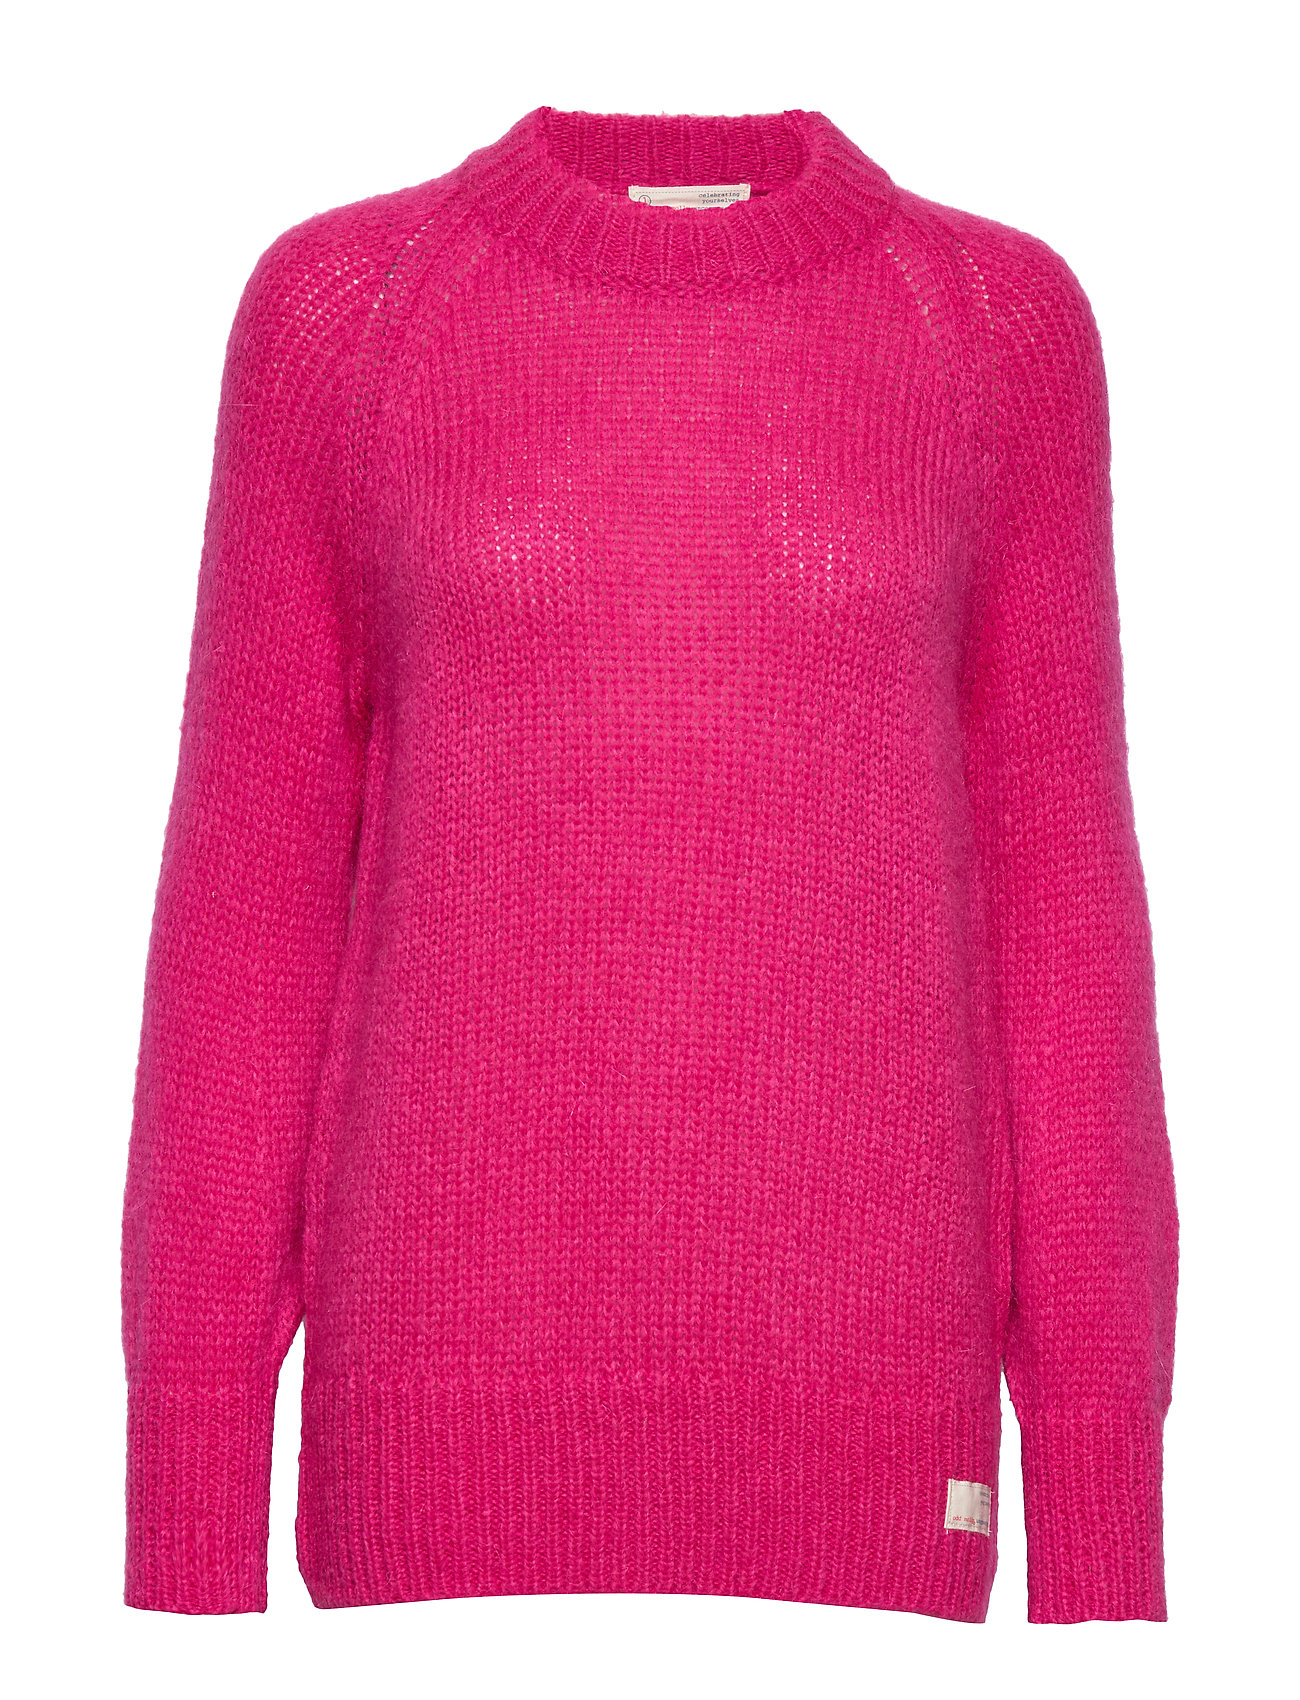 ODD MOLLY Significant Other Sweater - HOT PINK